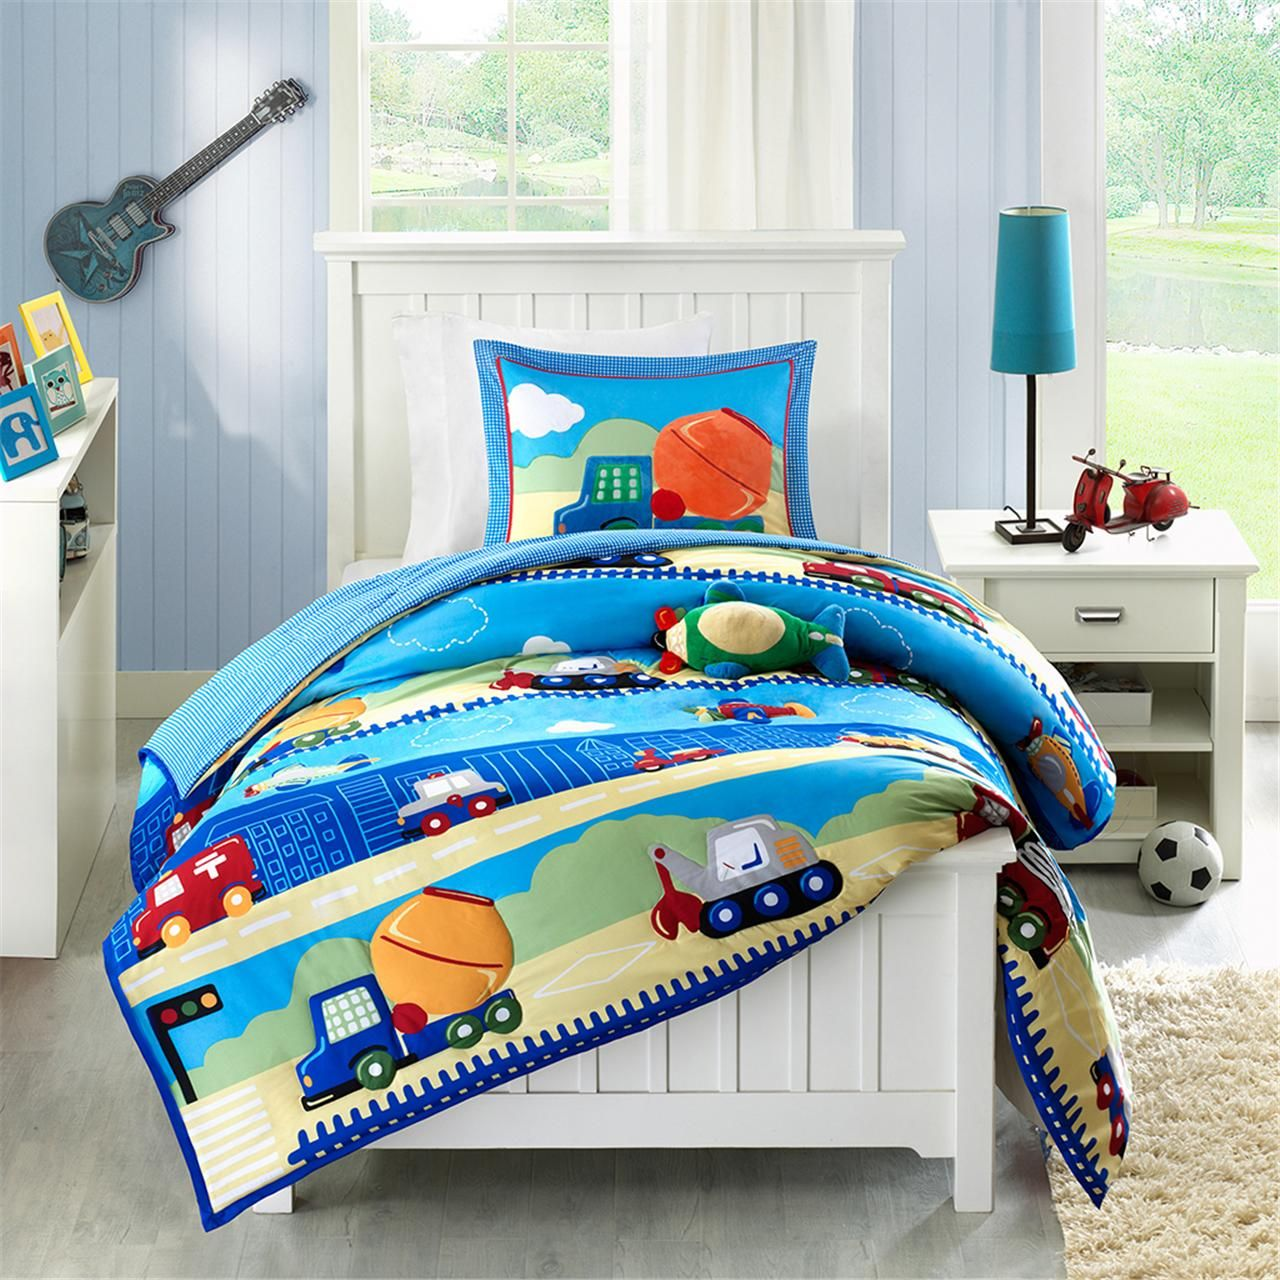 sets set rc bedding bedspread girls cat jolly then comforters of graceful comforter large bed teen purrty size for boys